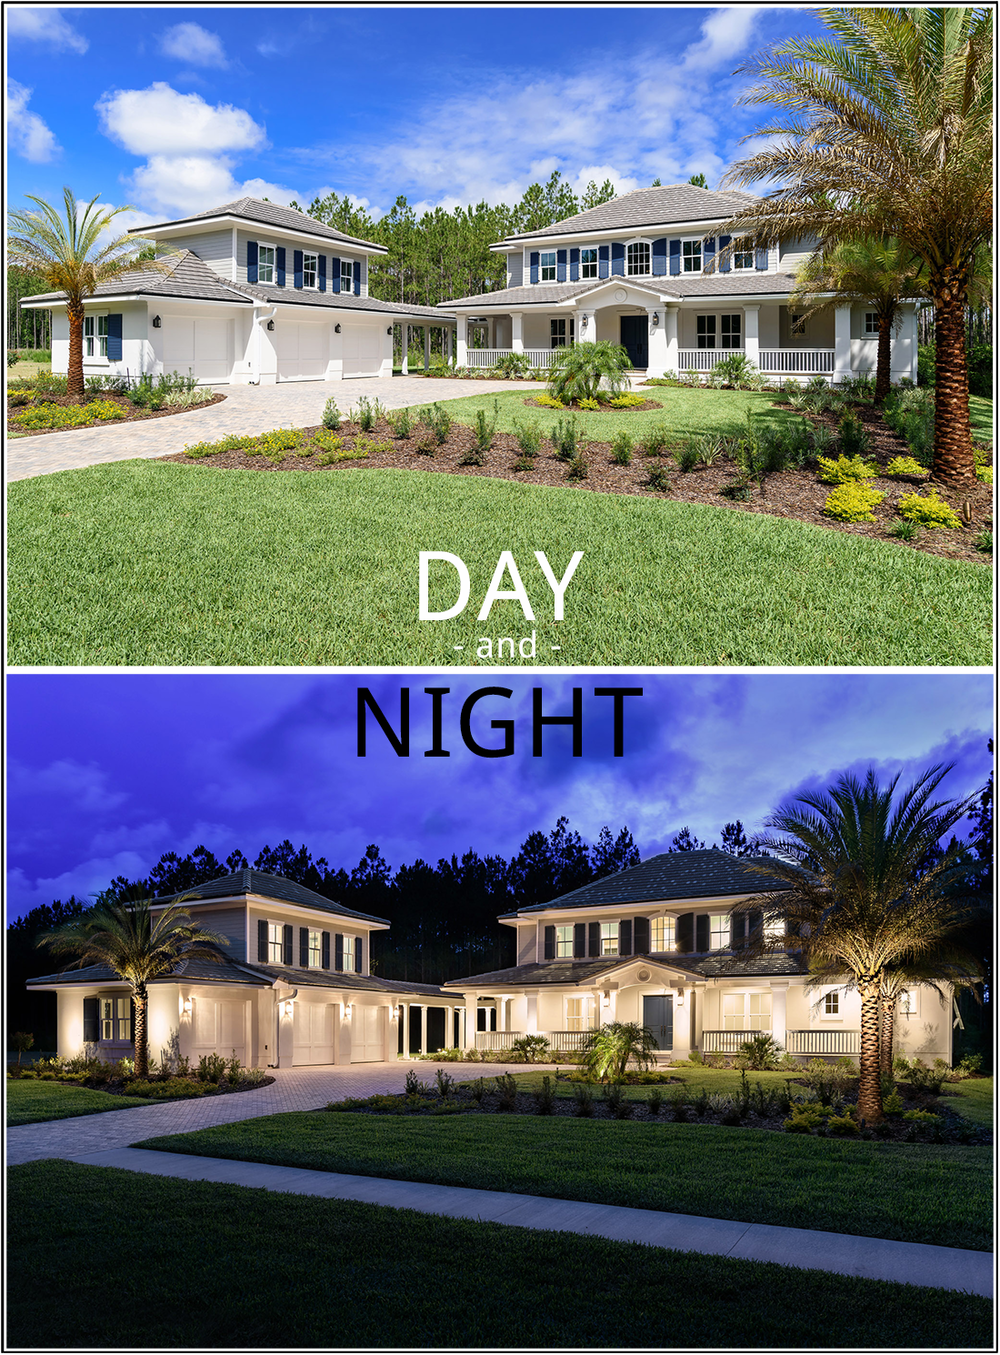 Although shot from a slightly different perspective, these two images of a Glenn Layton home in the Twenty Mile neighborhood in Nocatee, St. Johns County, illustrate the dramatic difference a few hours can make. Depending on your marketing needs, we can create daytime or nighttime images -- or both.